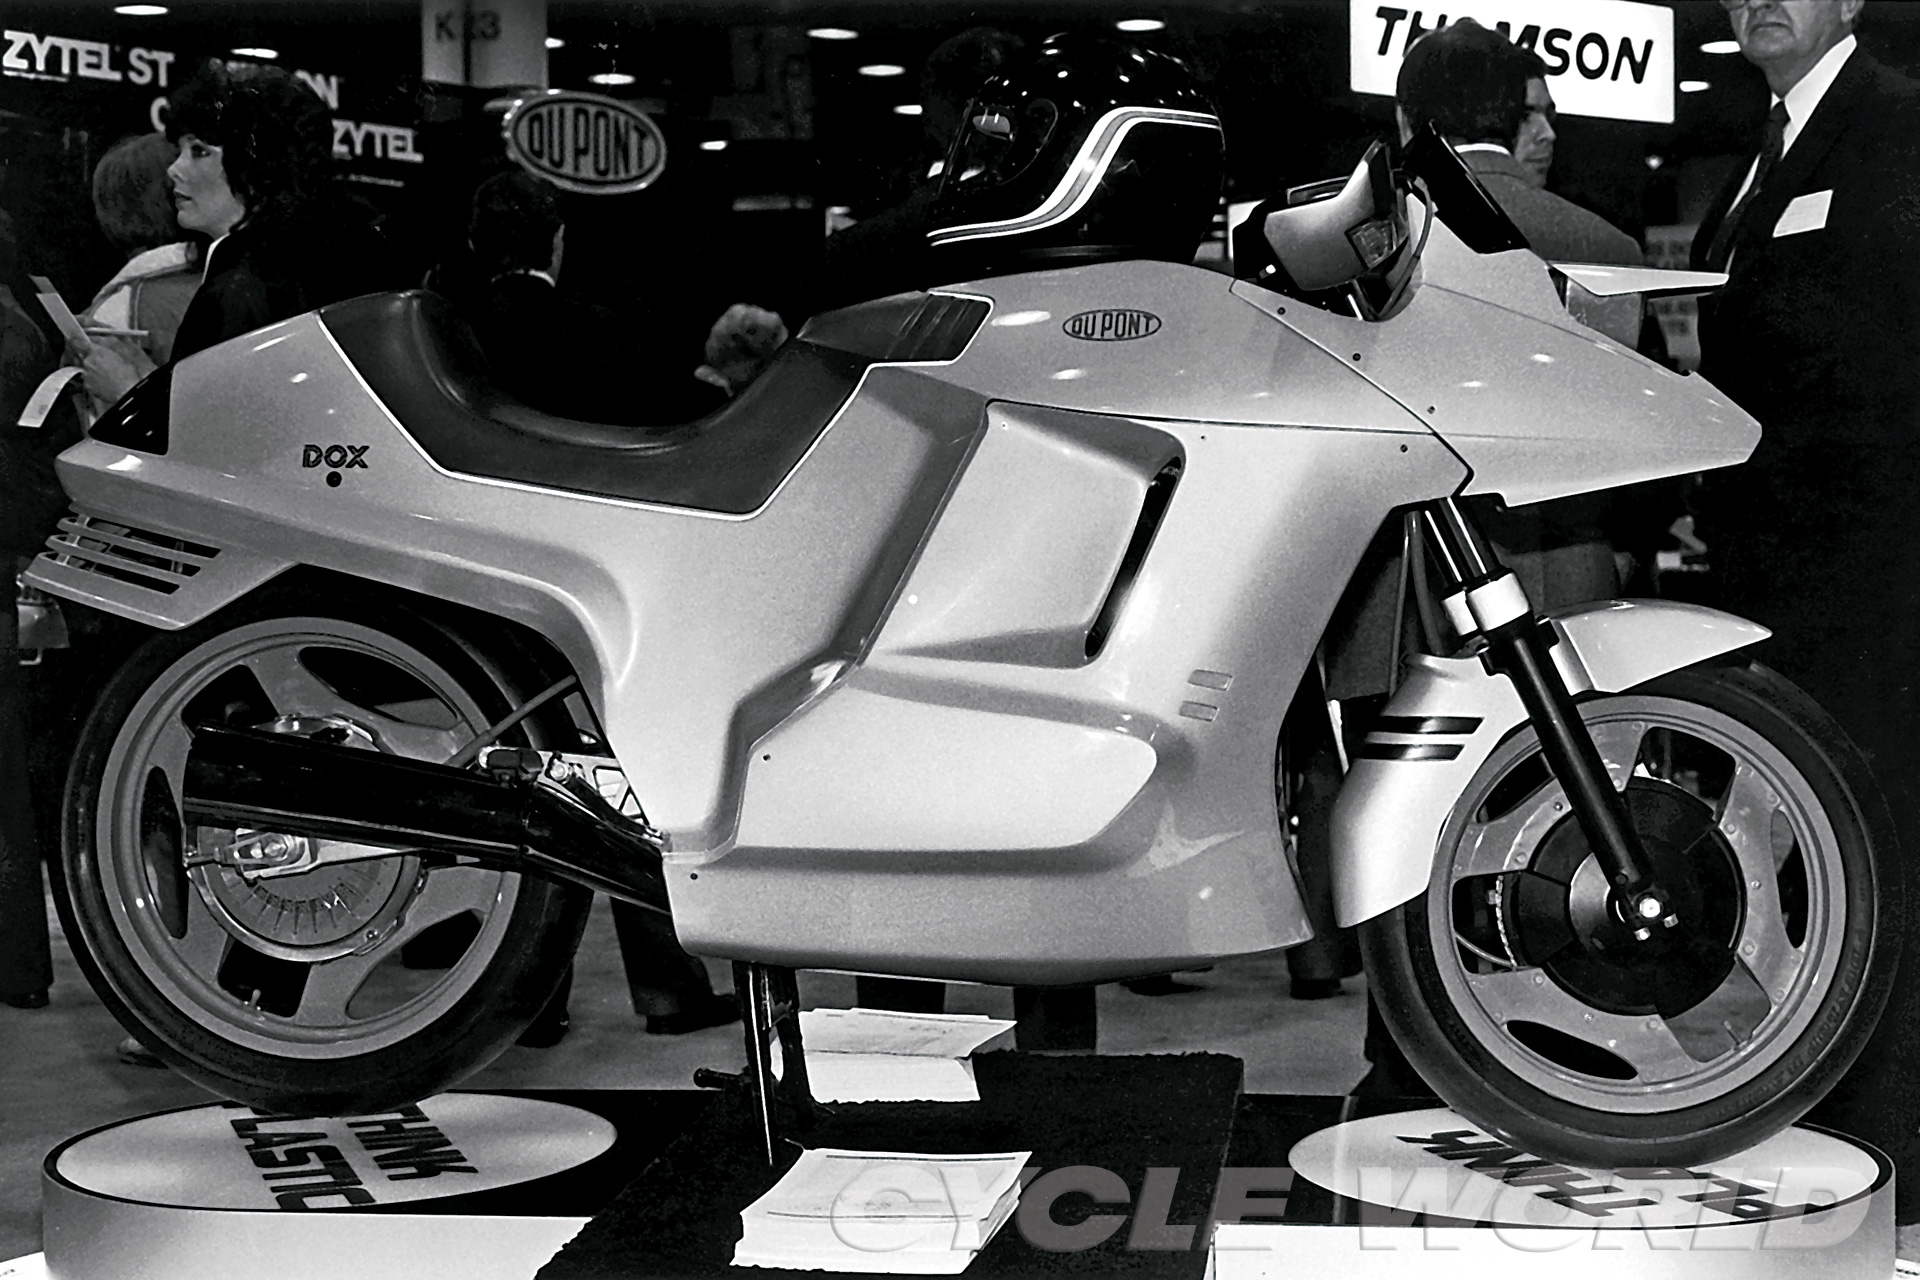 DuPont's concept motorcycle